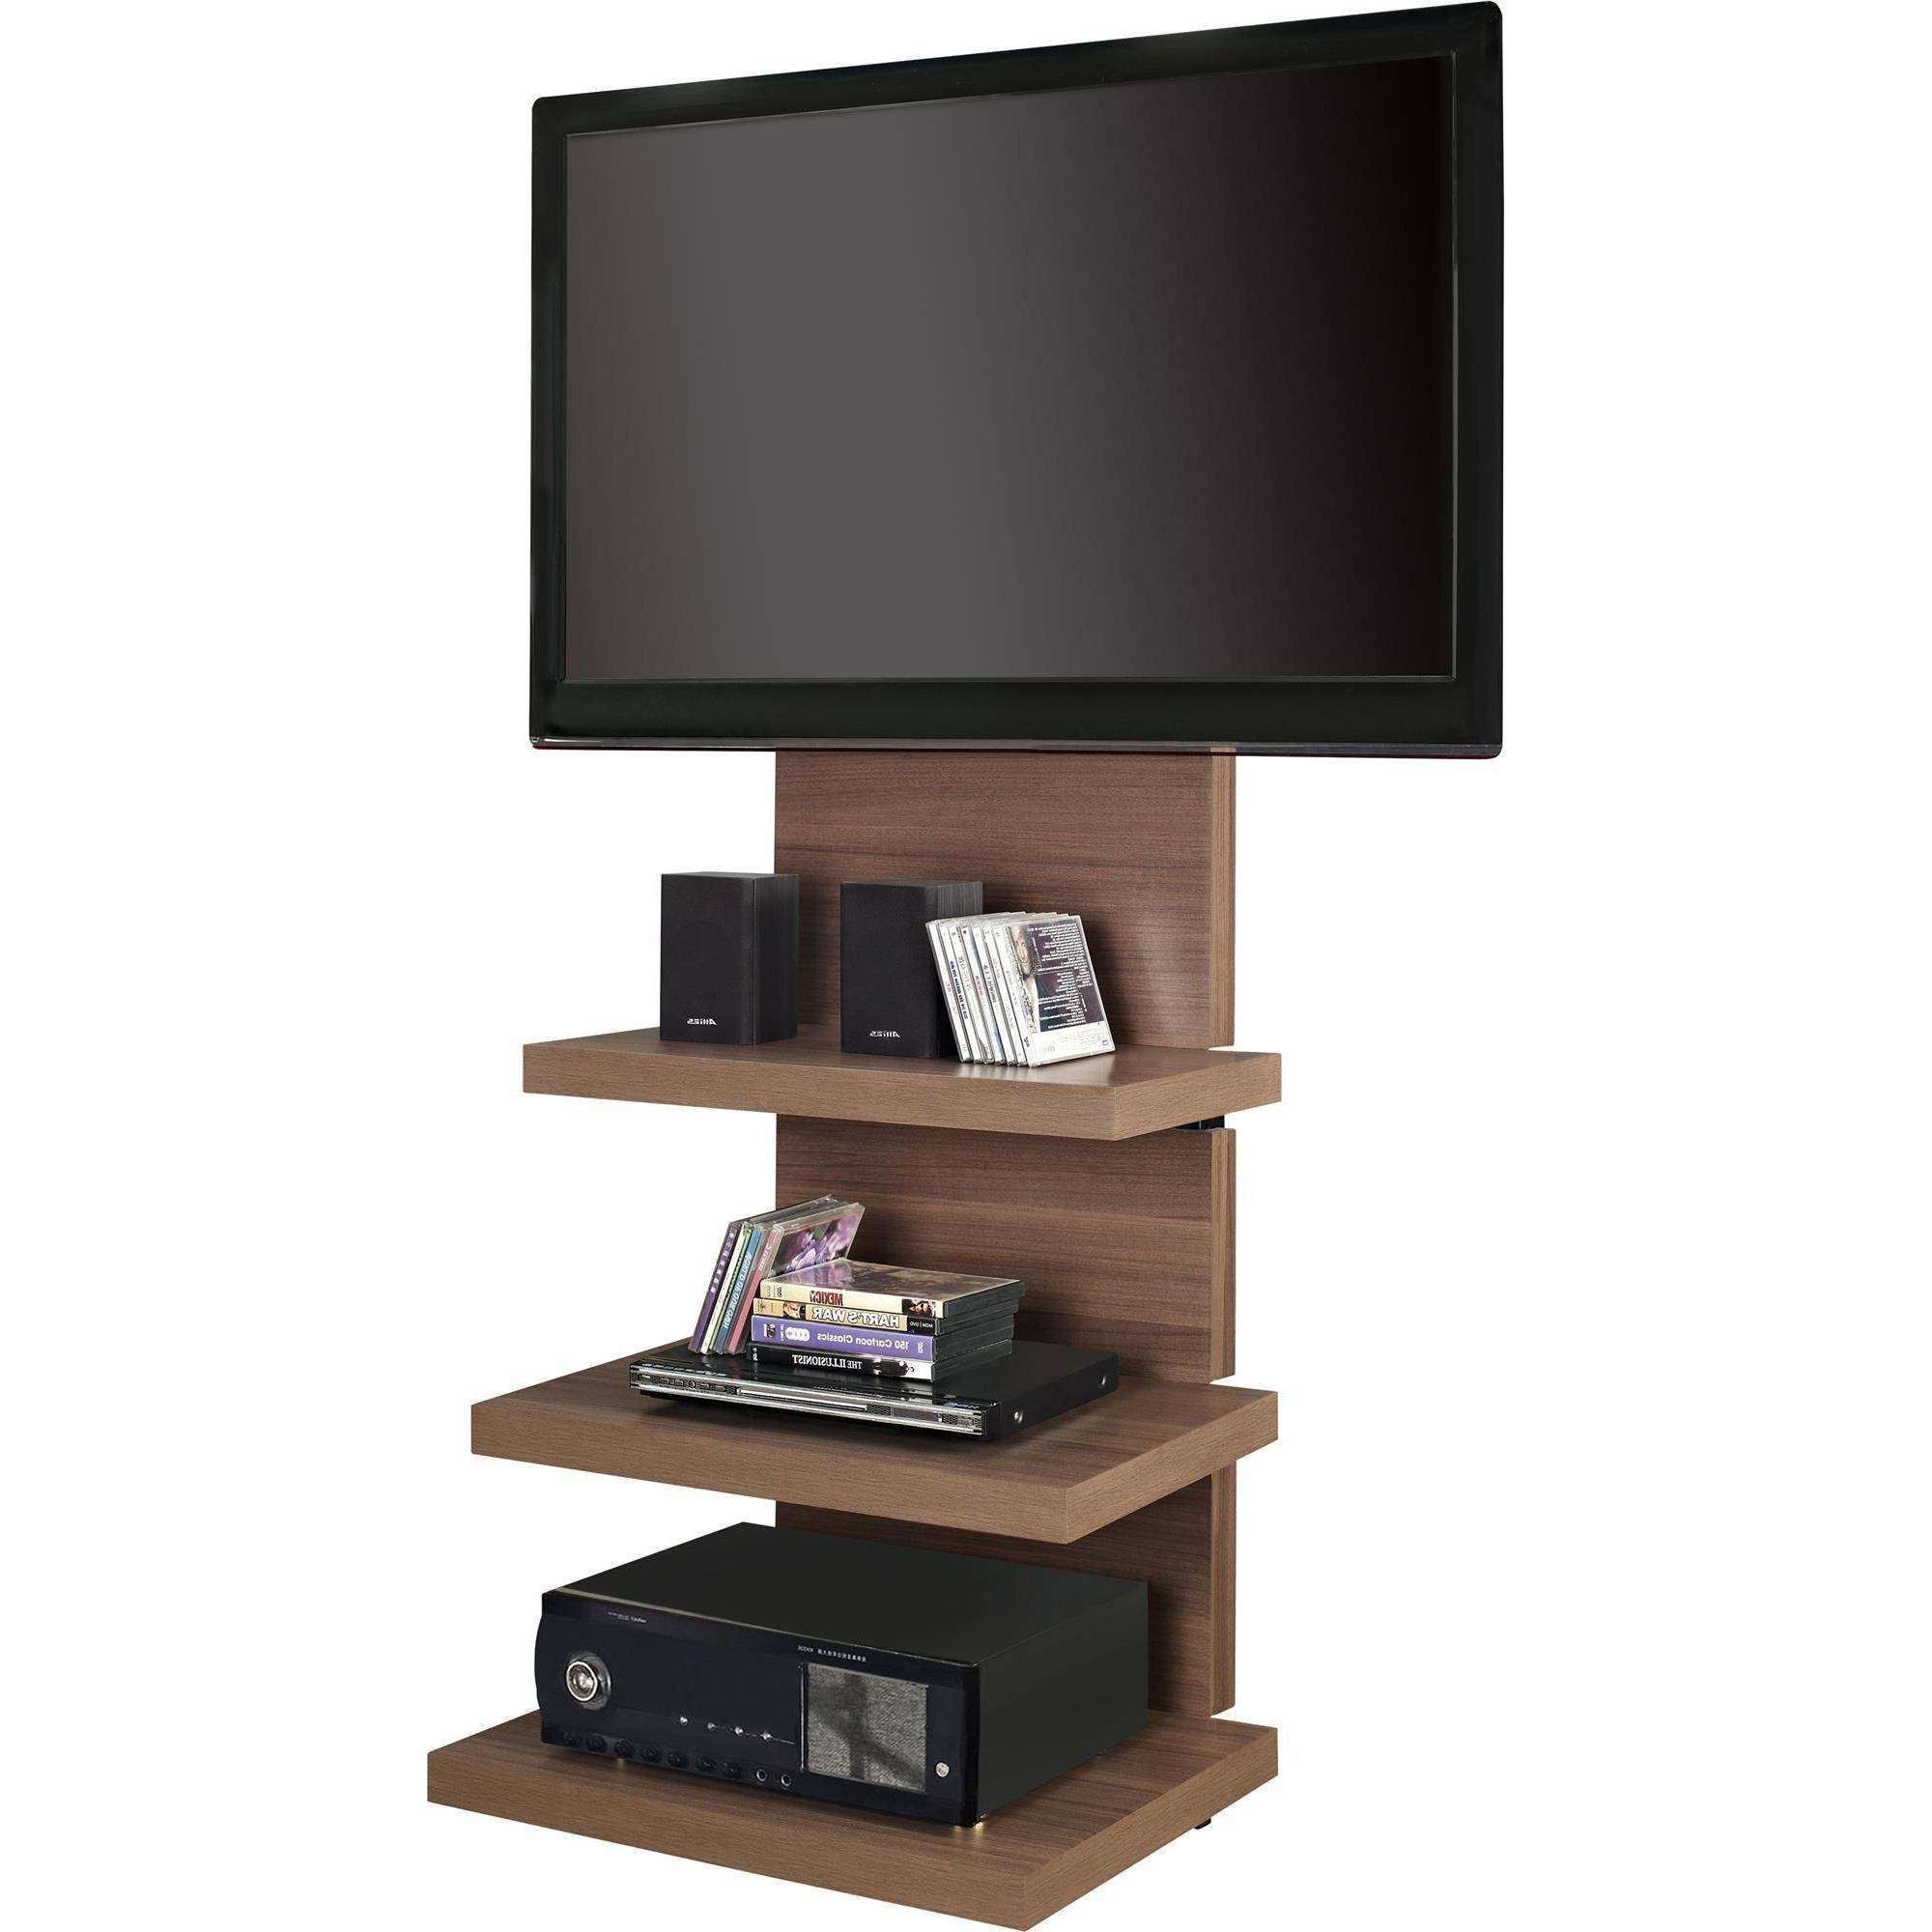 Ameriwood Home Elevation Altramount Tv Stand For Tvs Up To 60 Pertaining To Modern Tv Stands For 60 Inch Tvs (View 3 of 15)